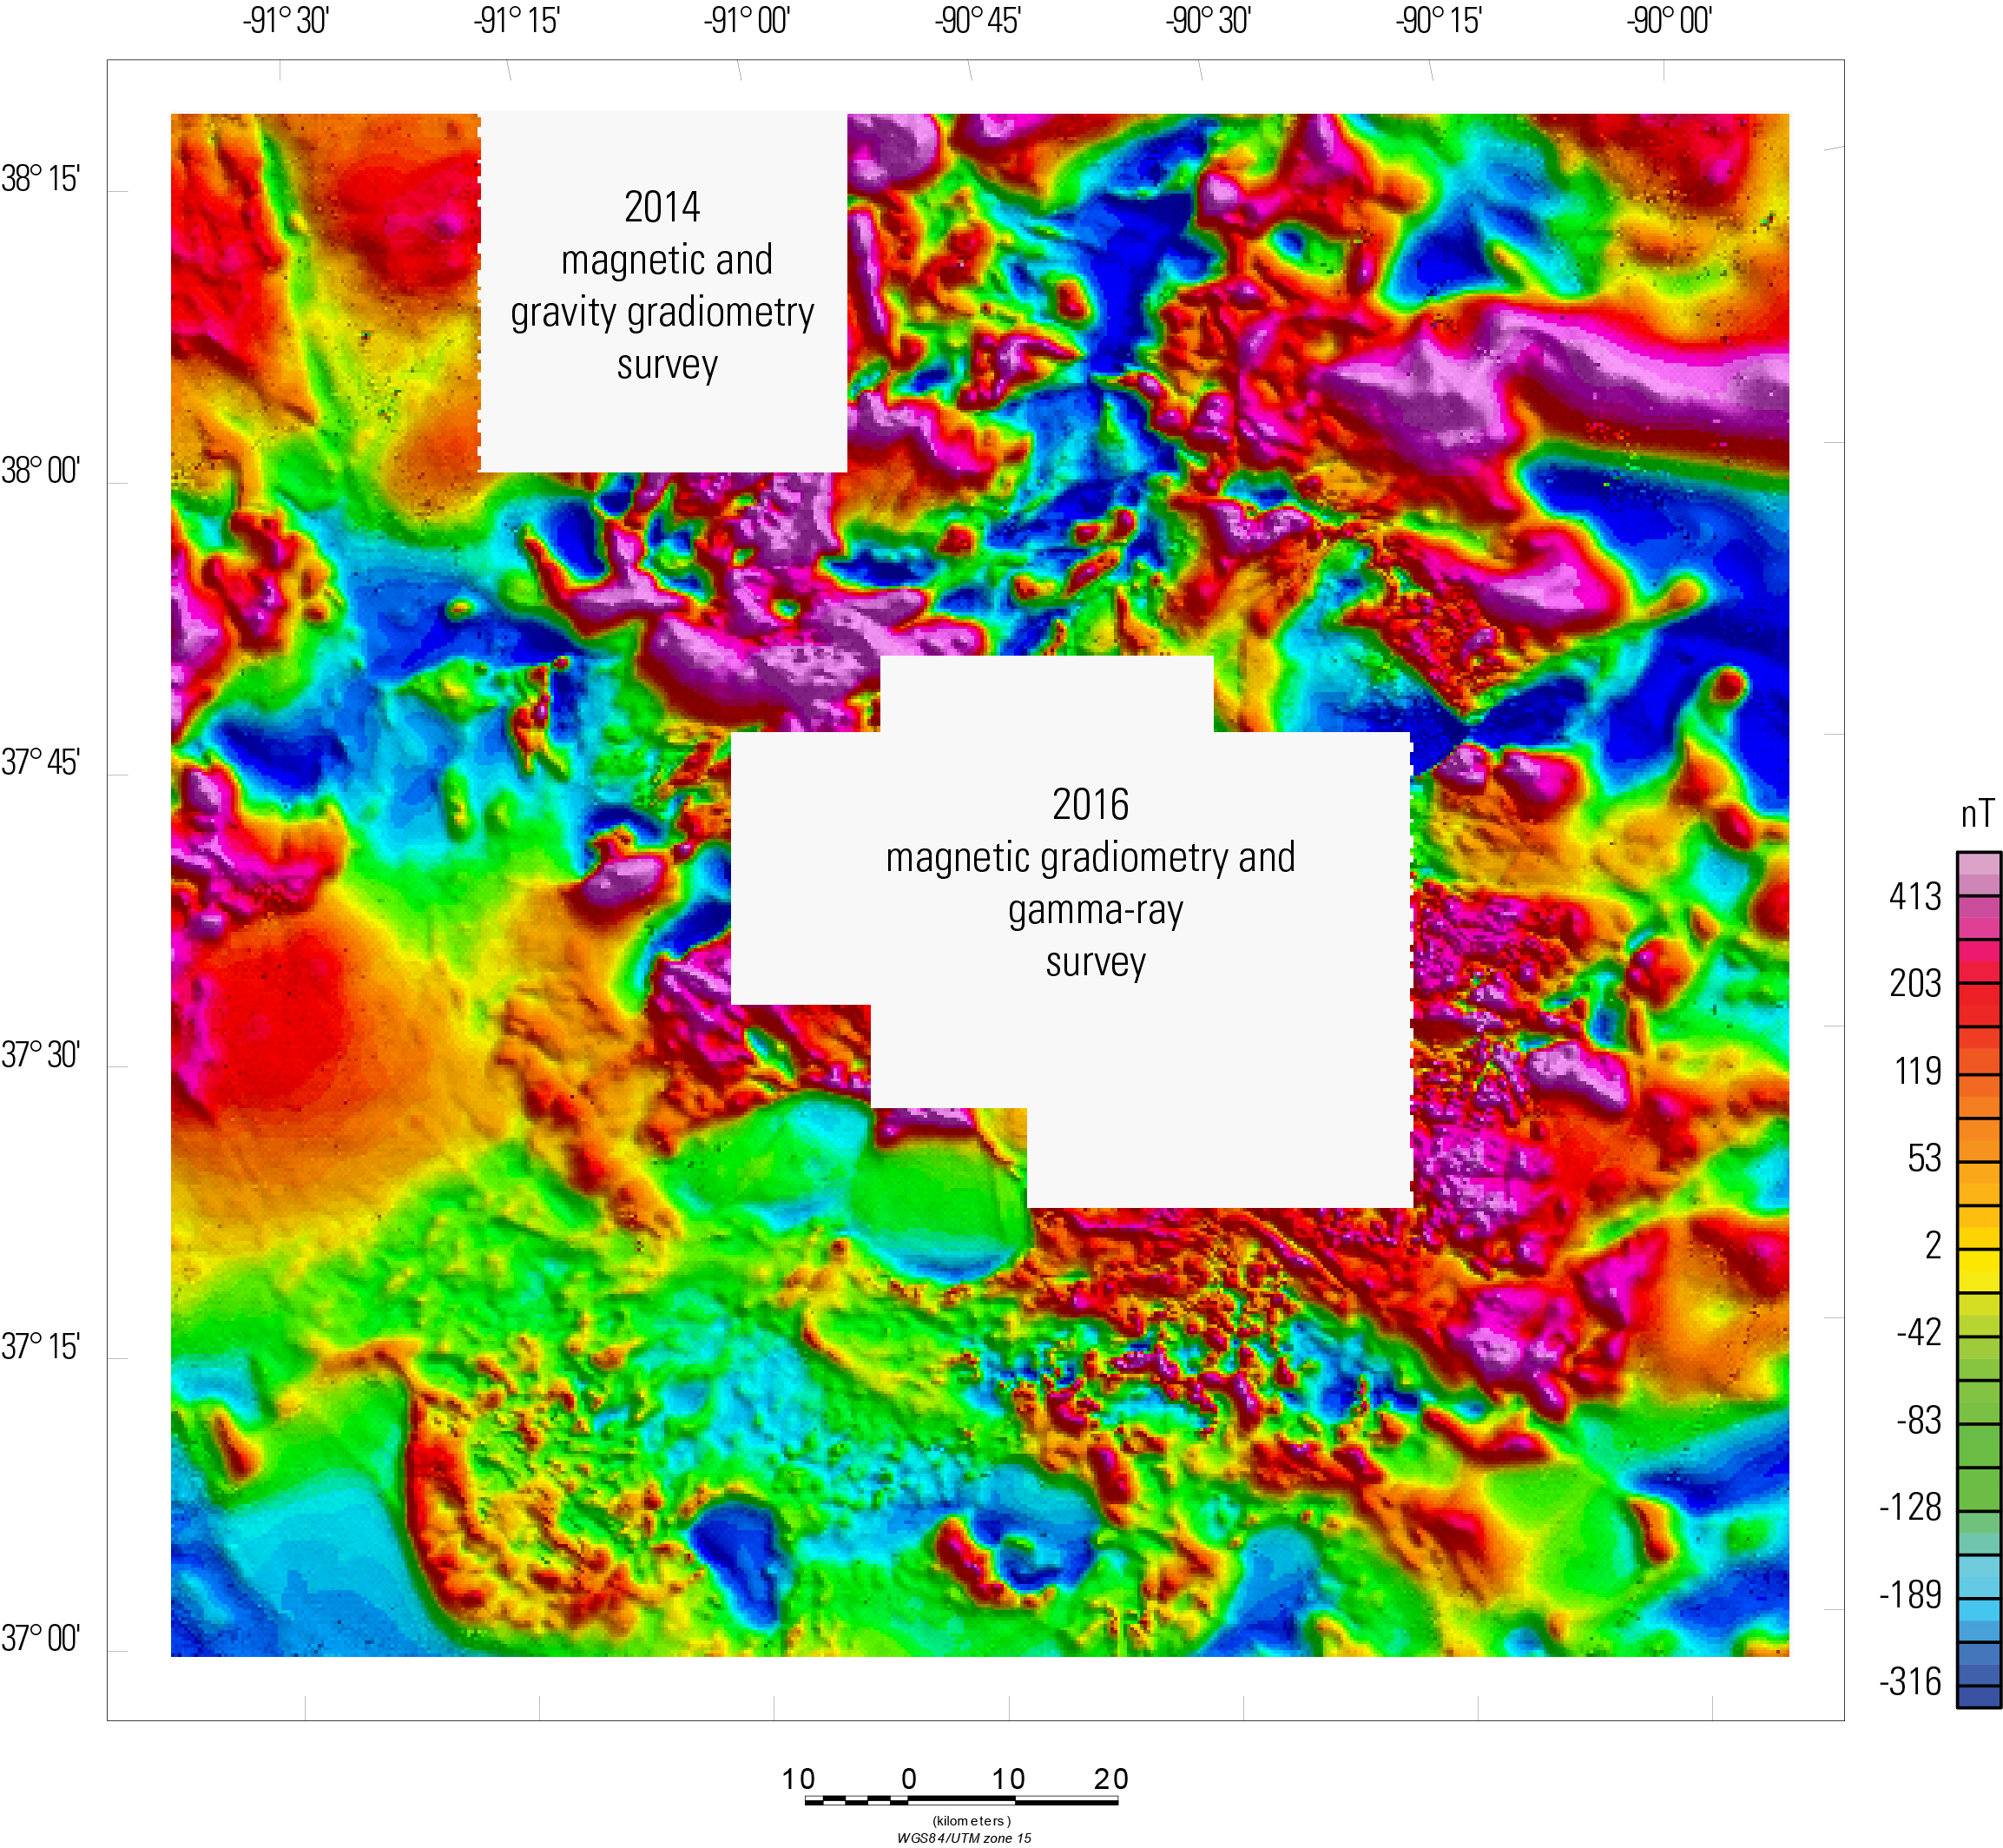 Total magnetic intensity map of the study area, with legend to the right.